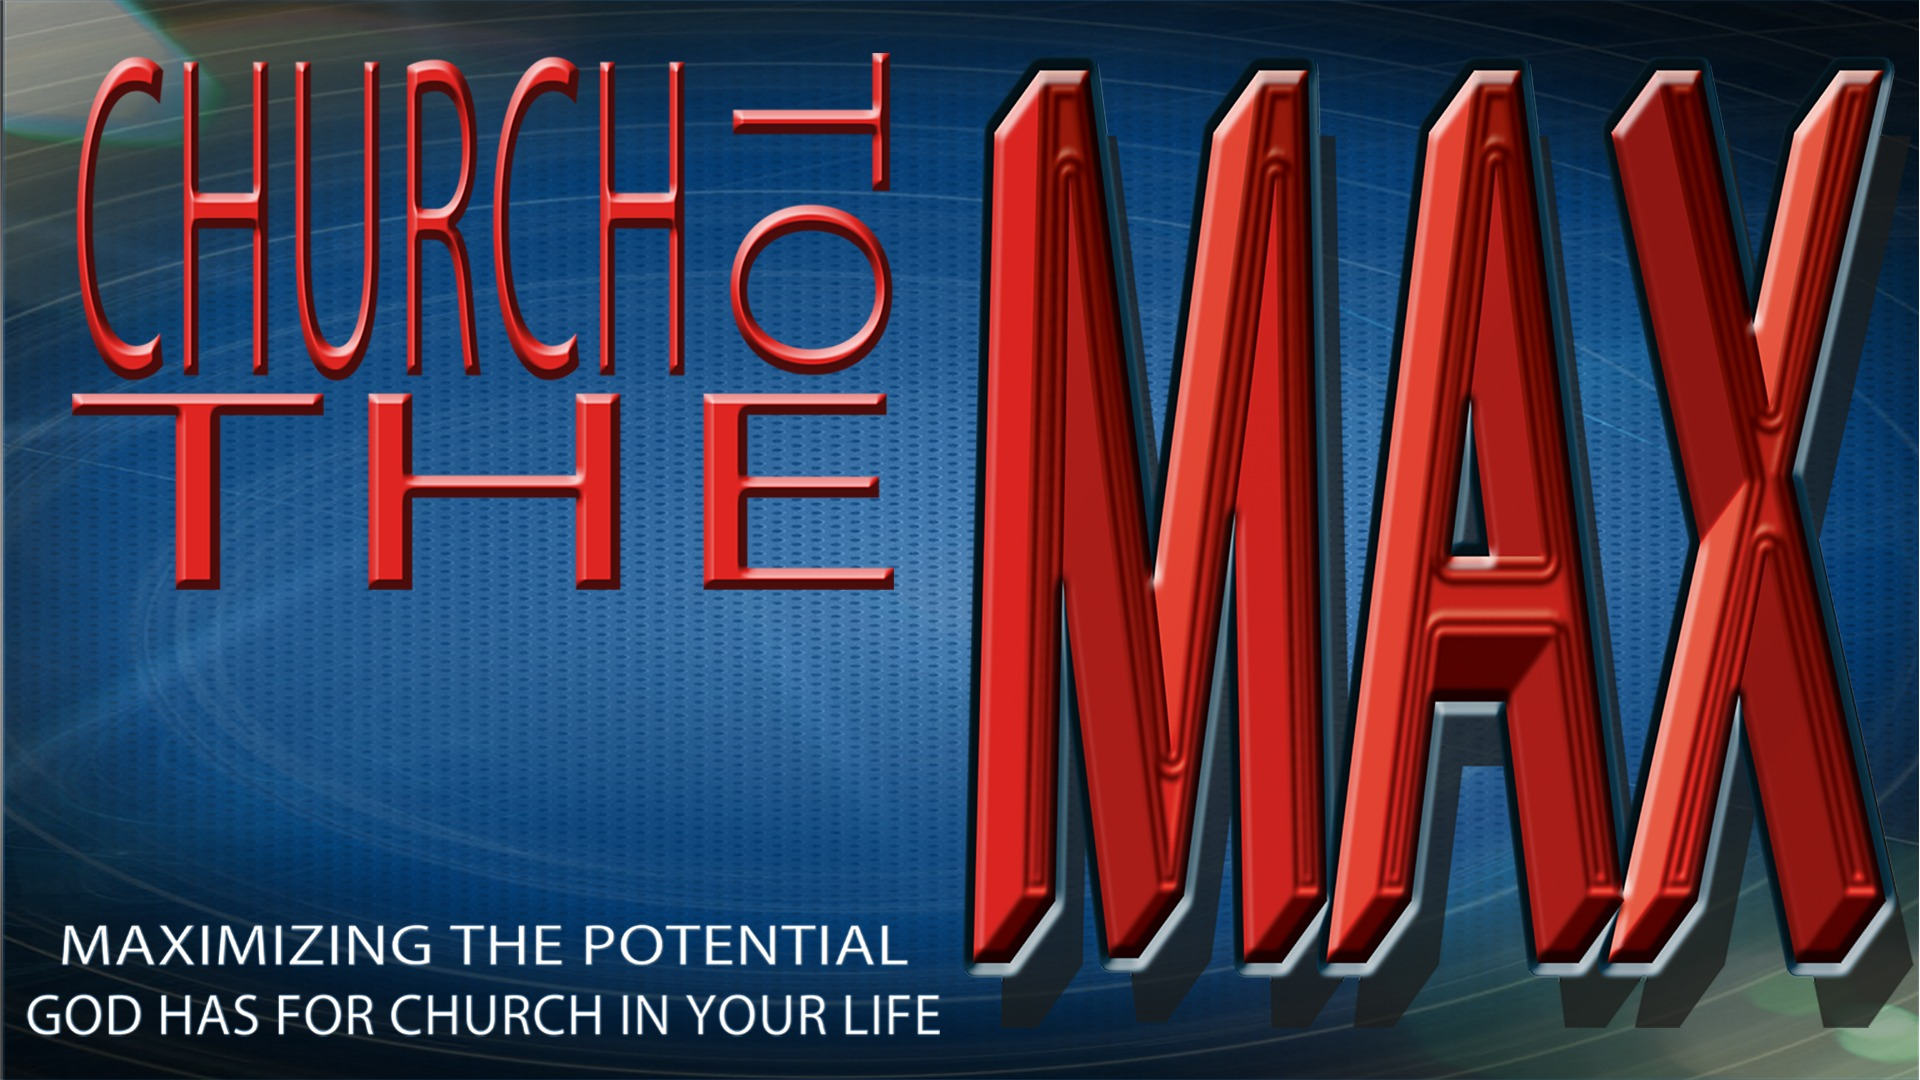 Maximizing the potential God has for church in your life